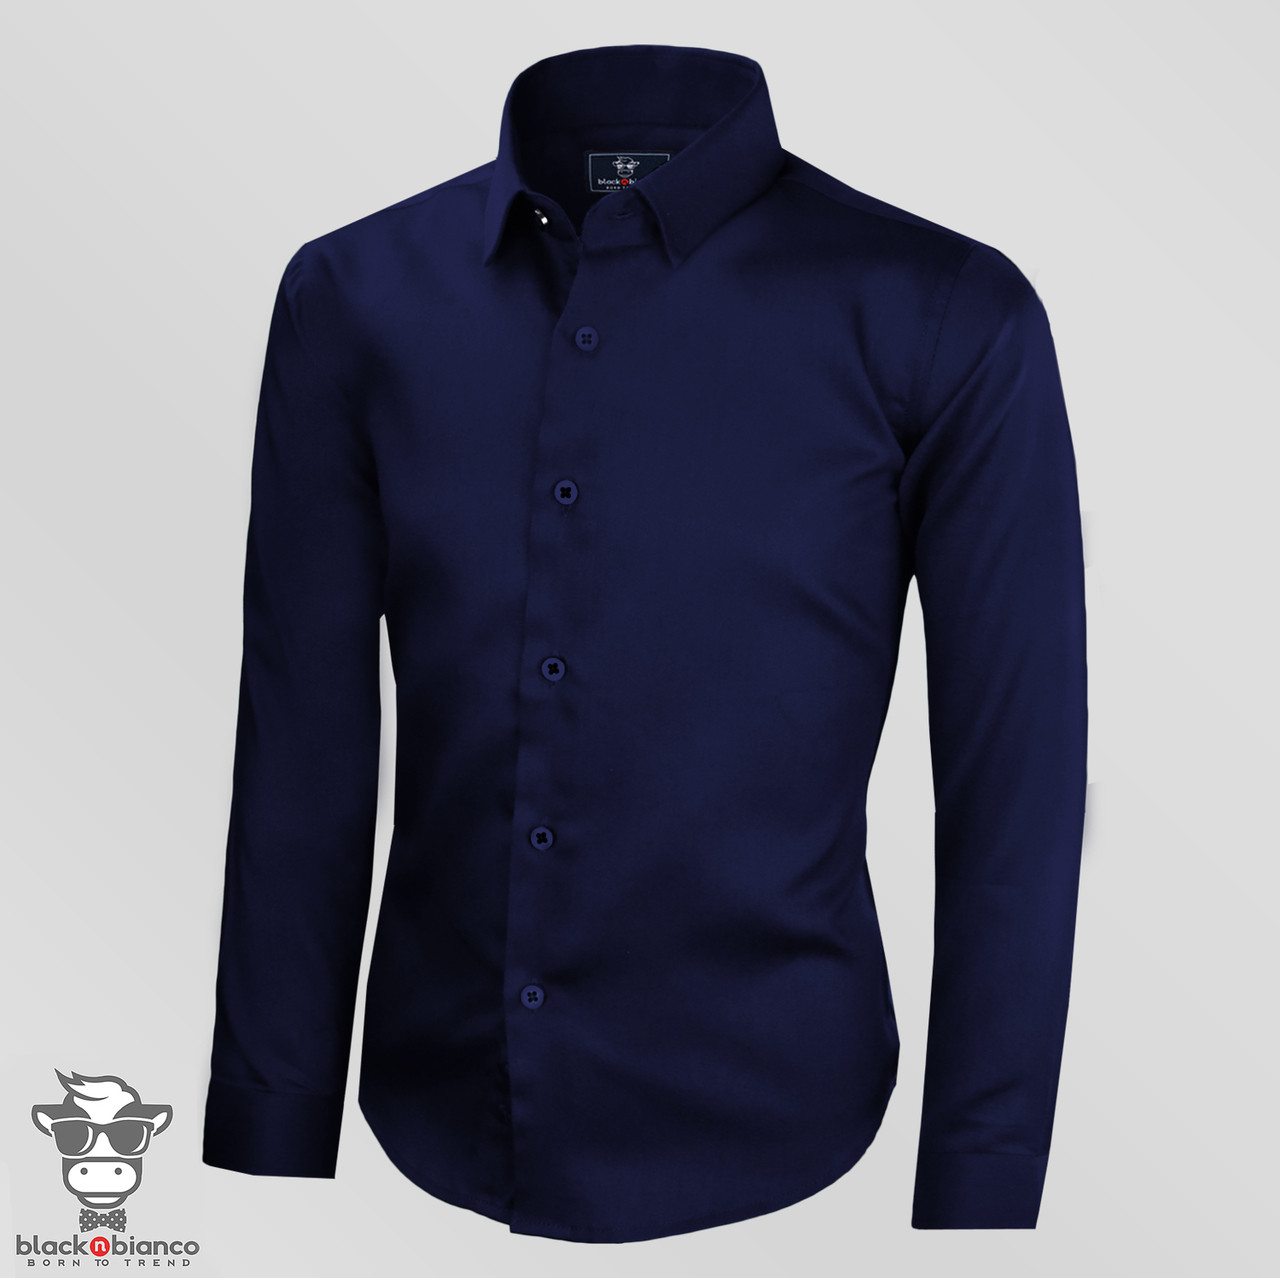 dc583c9987a Boys Navy Sateen Dress Shirt. Boys Navy Sateen Dress Shirt. Black n Bianco  Signature Slim Fit Navy Sateen ...